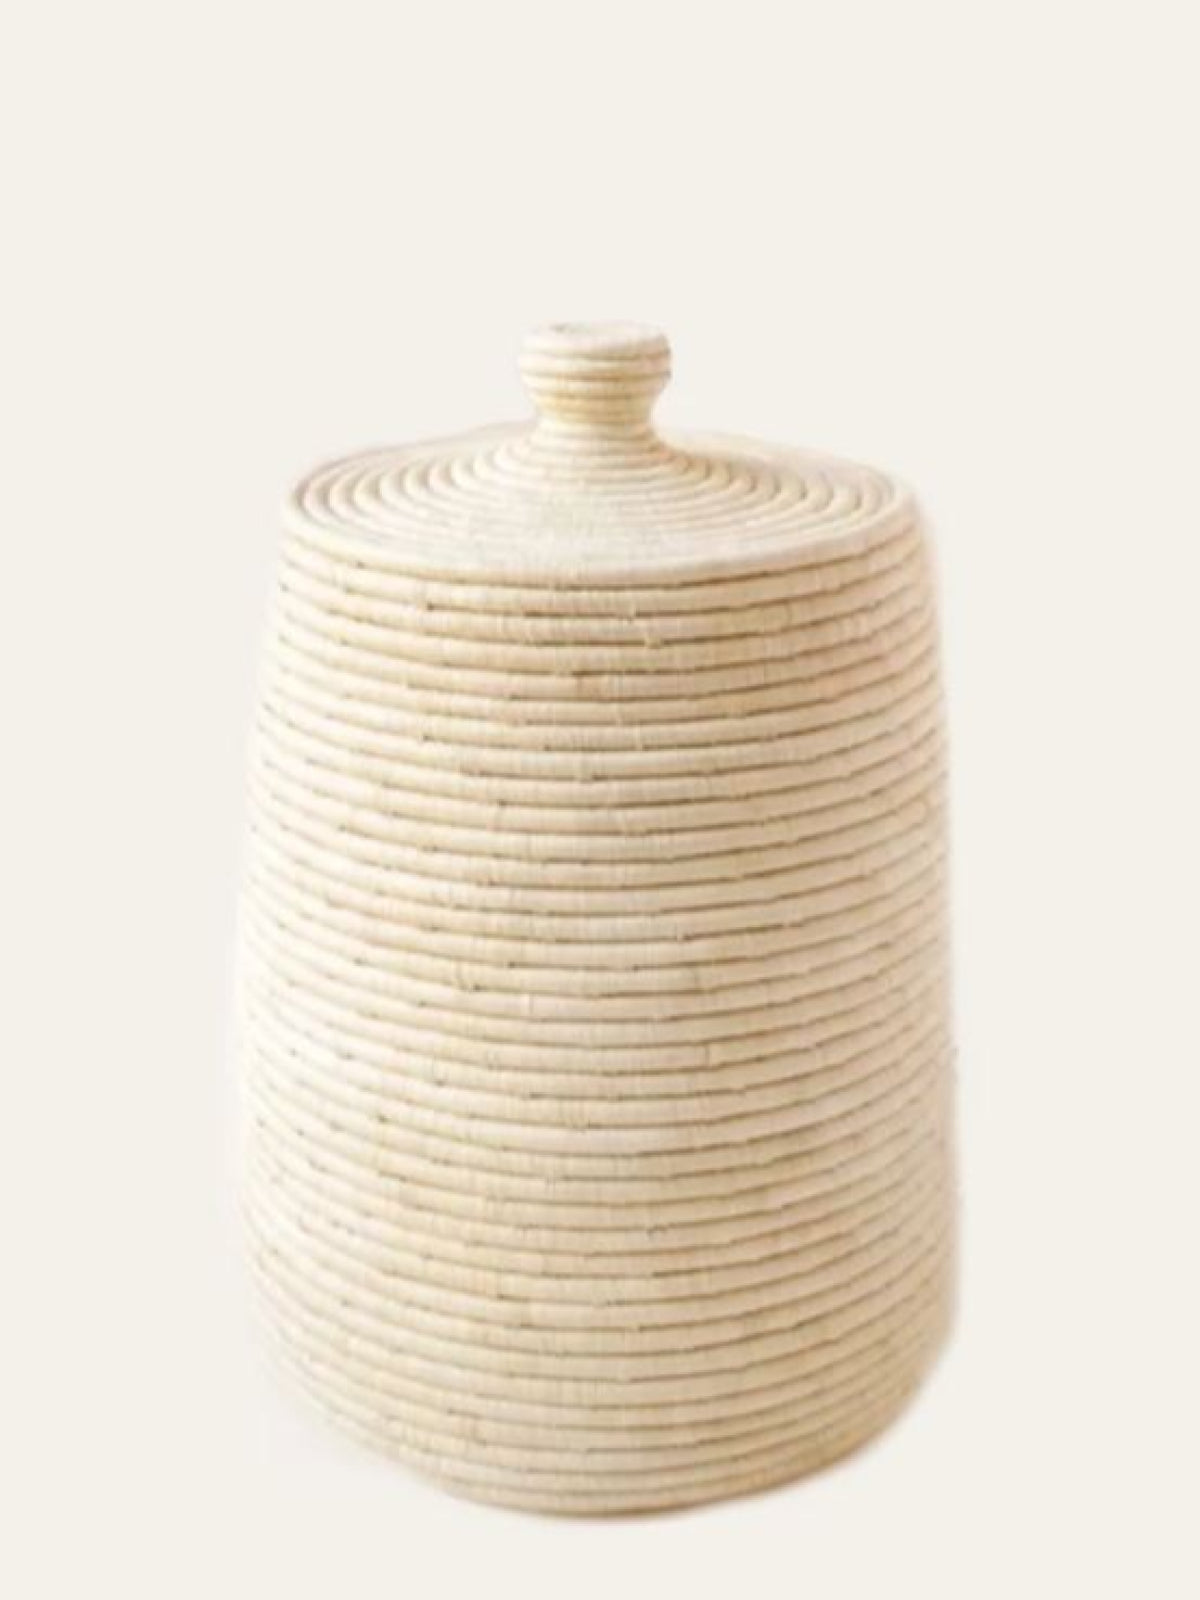 Rafia Lidded Basket